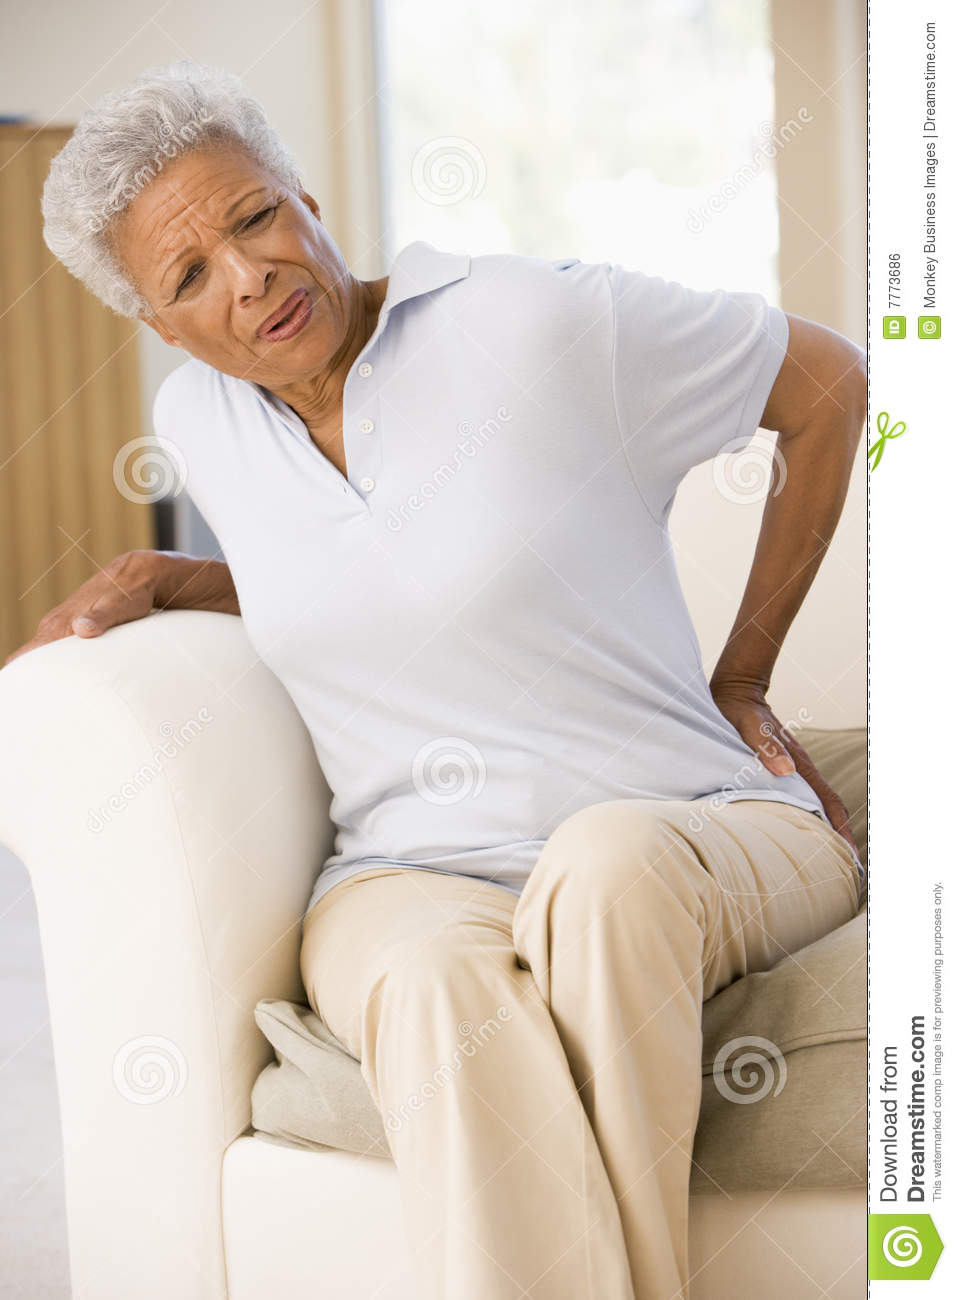 Woman With Back Pain Royalty Free Stock Image - Image: 7773686